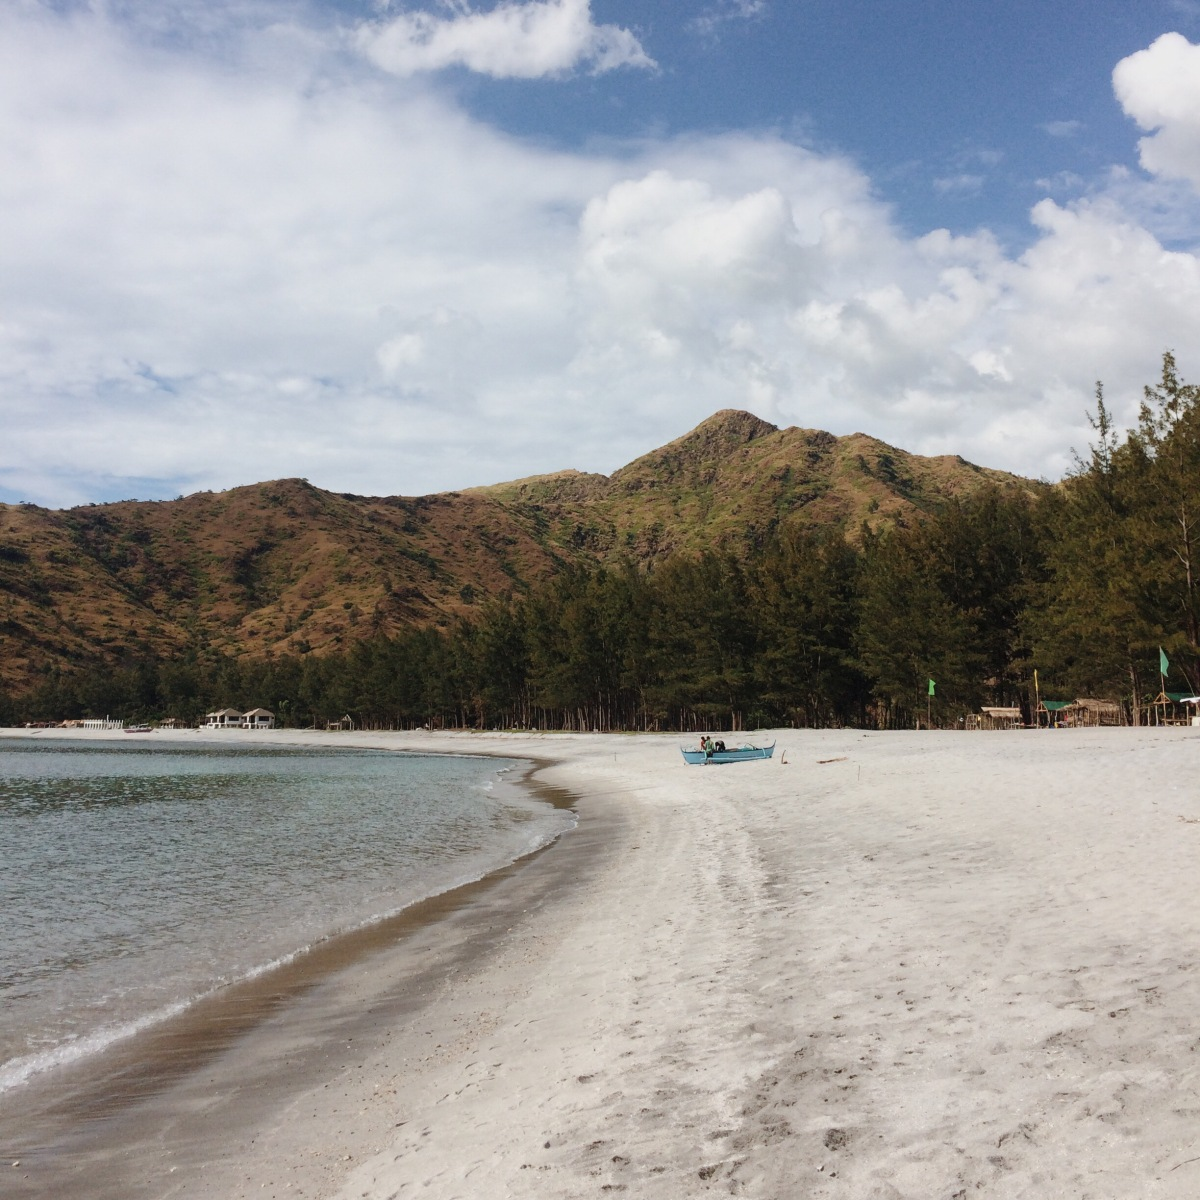 Talisayin Cove Zambales: Laid-back Beach Camping Escape